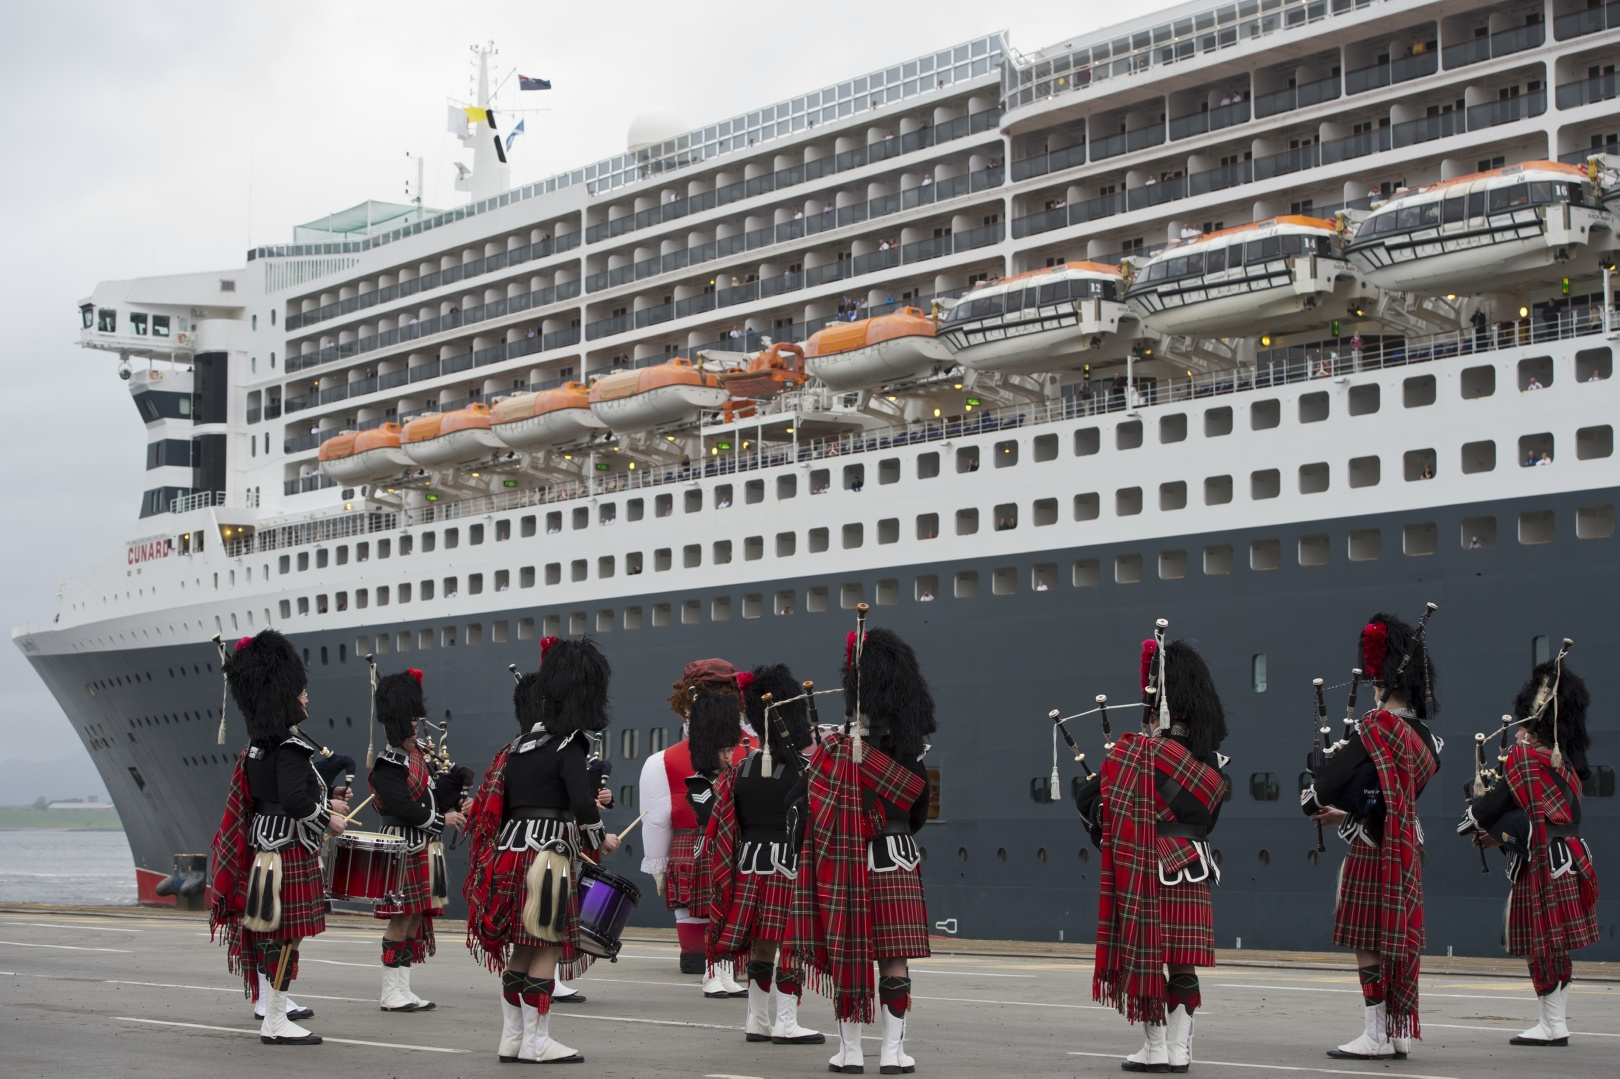 Queen Mary 2 arrives at Greenock, Scotland on May 20, 2015.